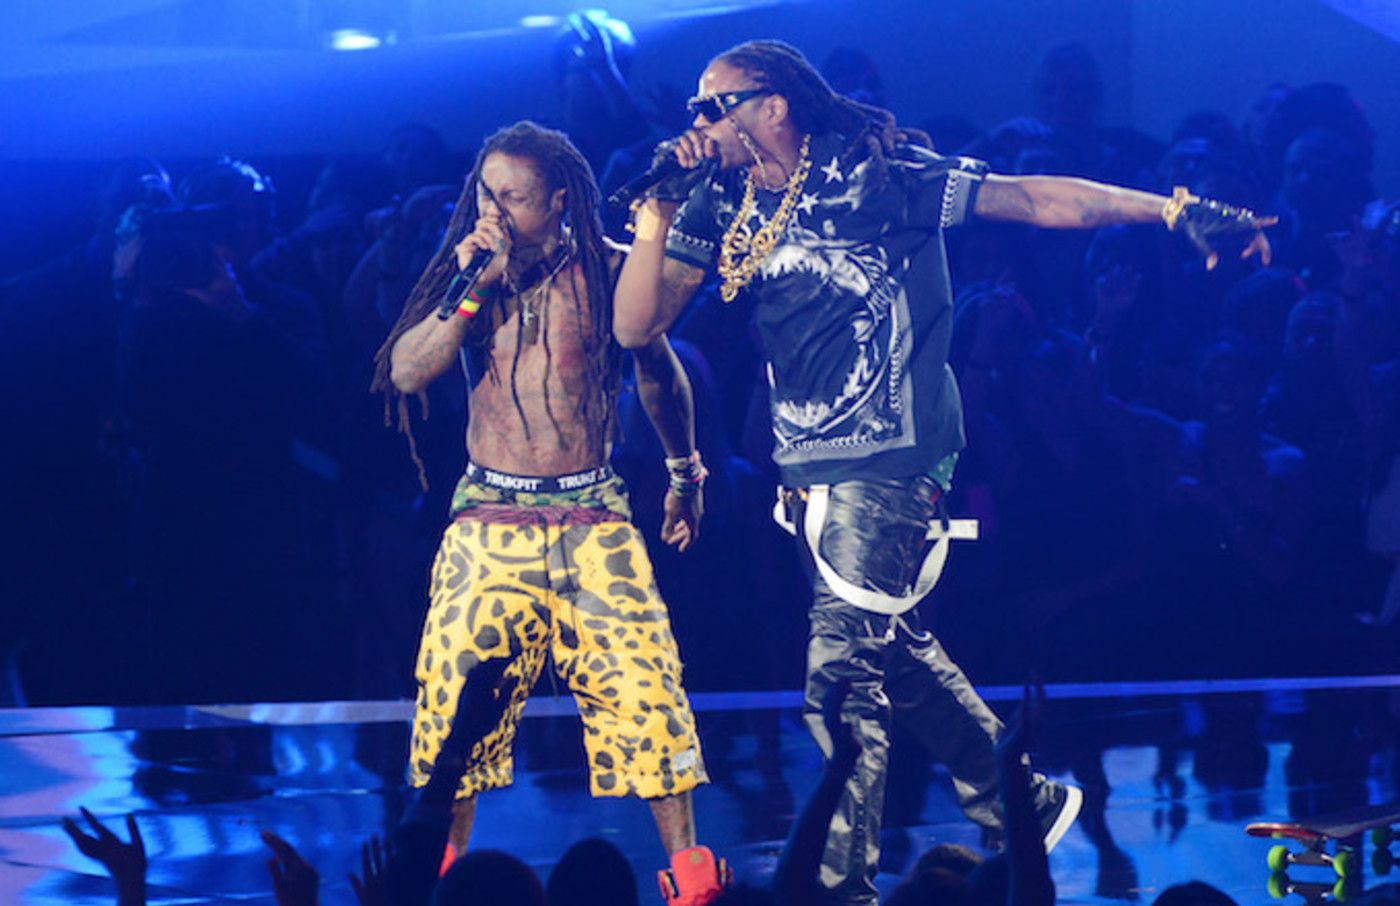 2 Chainz and Lil Wayne performing.